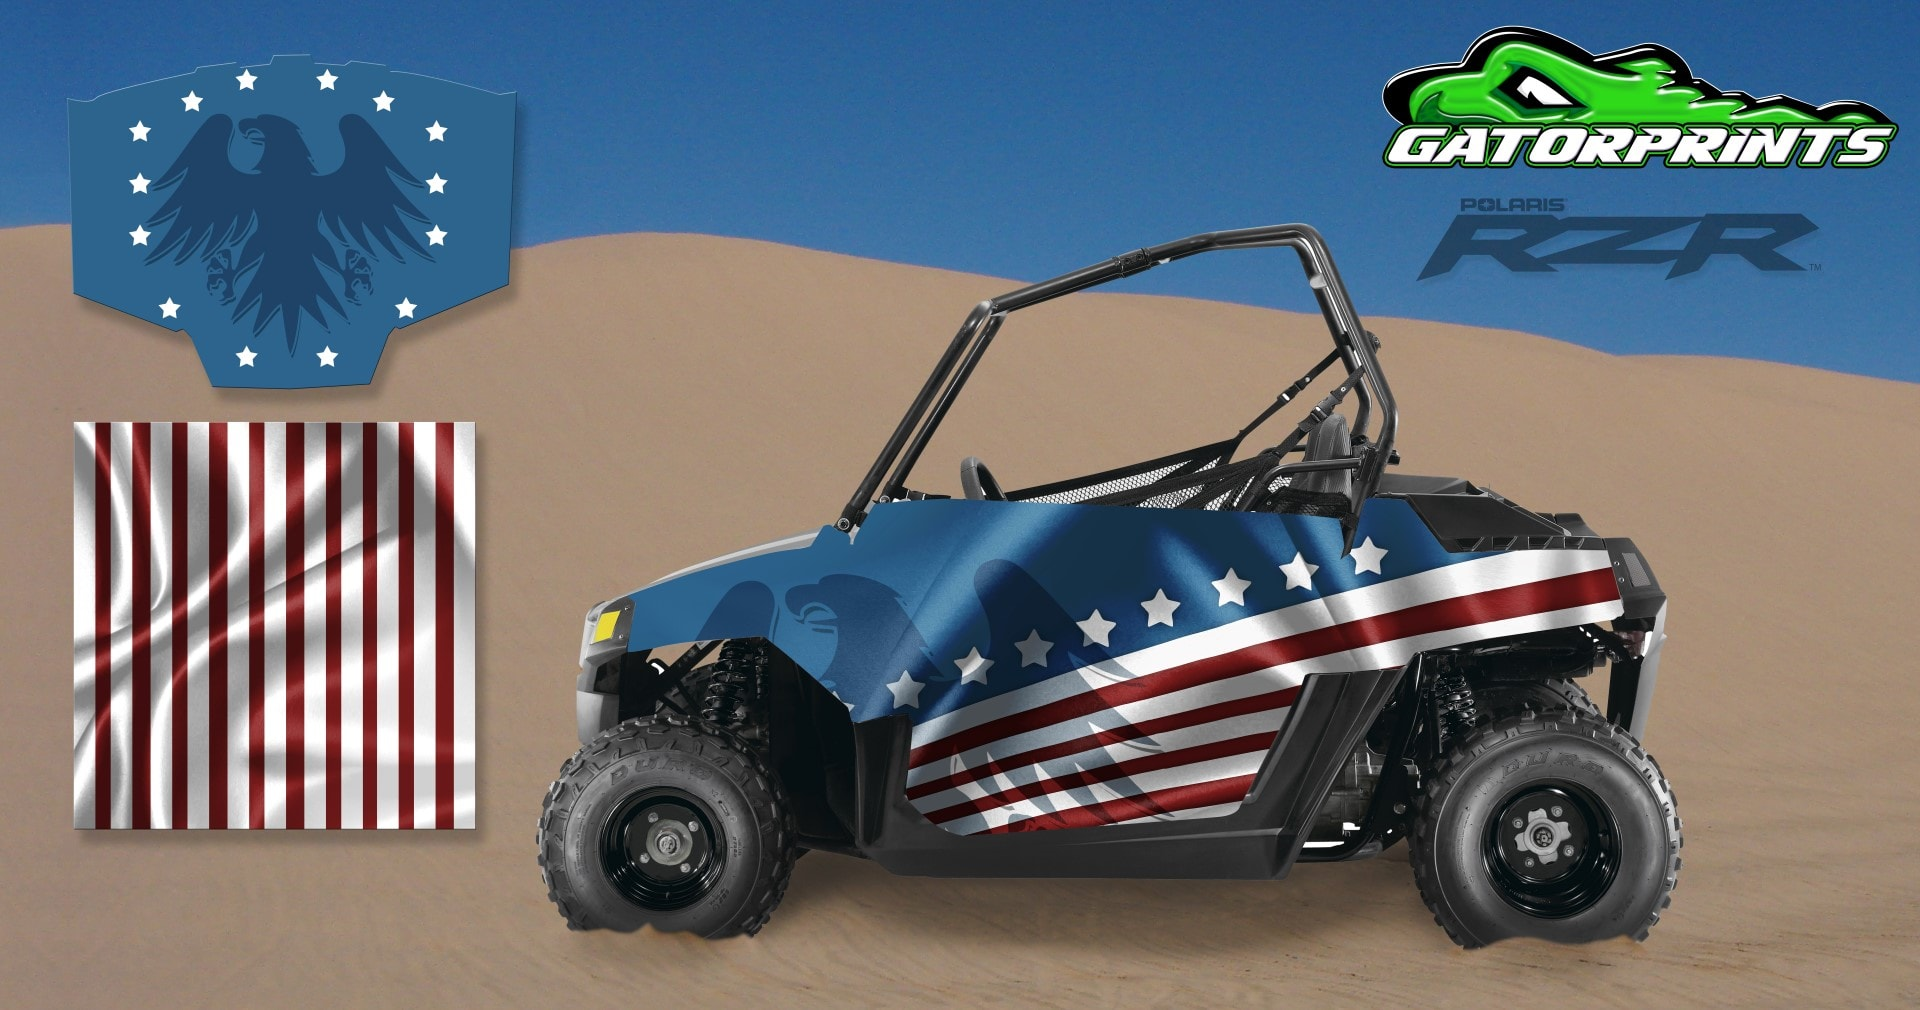 polaris youth rzr 170 decal kits usa american flag design. Black Bedroom Furniture Sets. Home Design Ideas